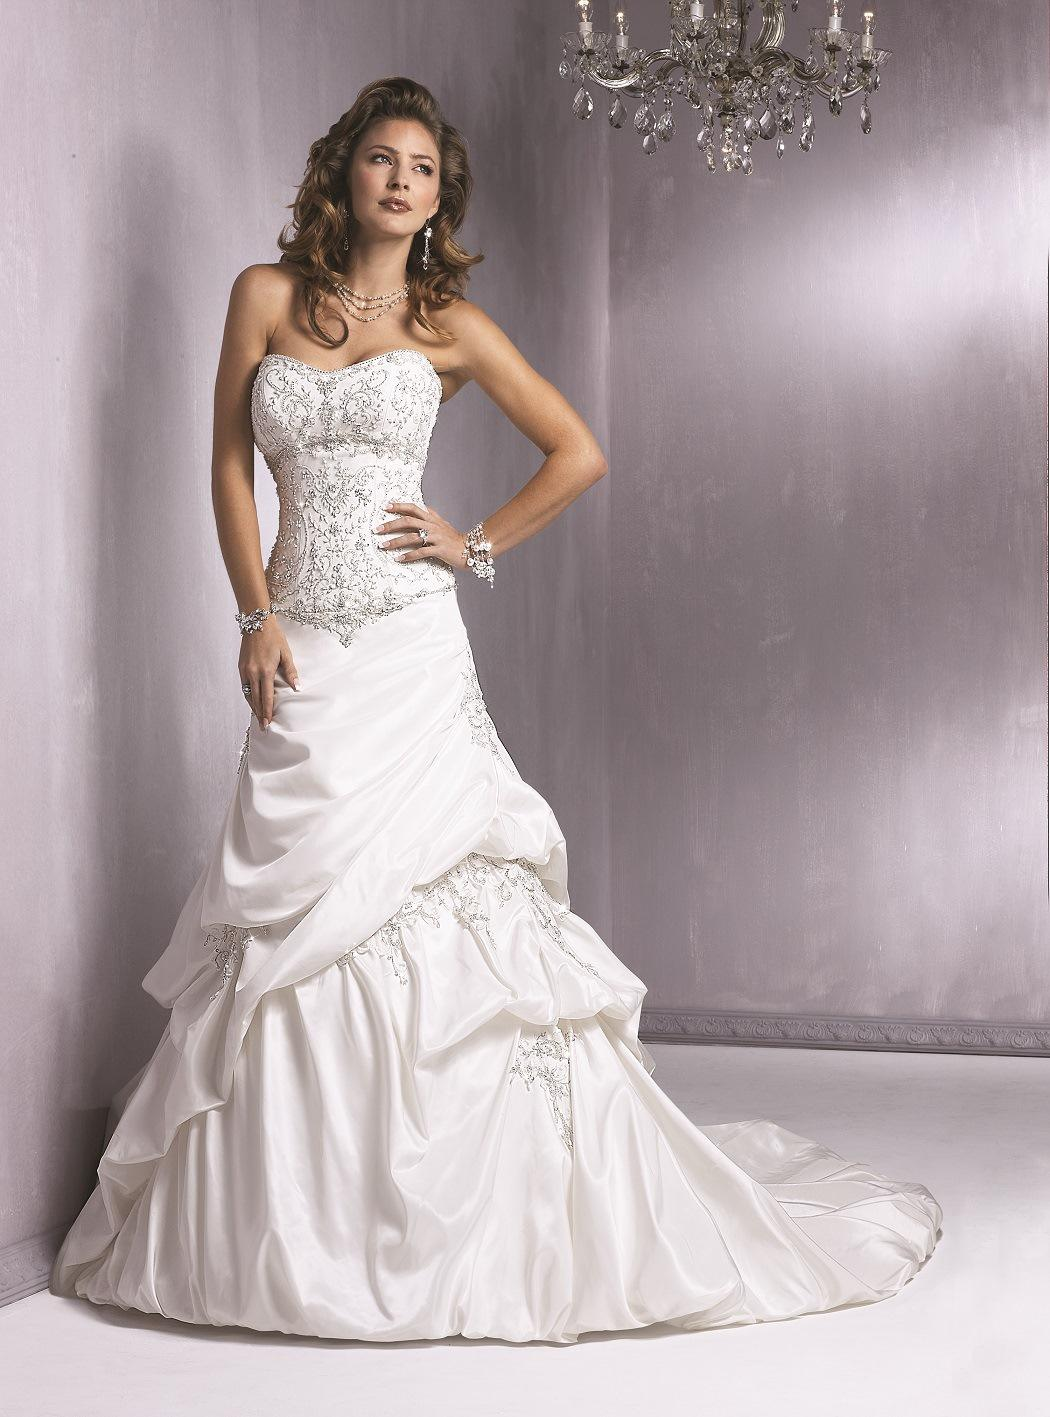 Maggie Sottero - Roma, Diamond White:40